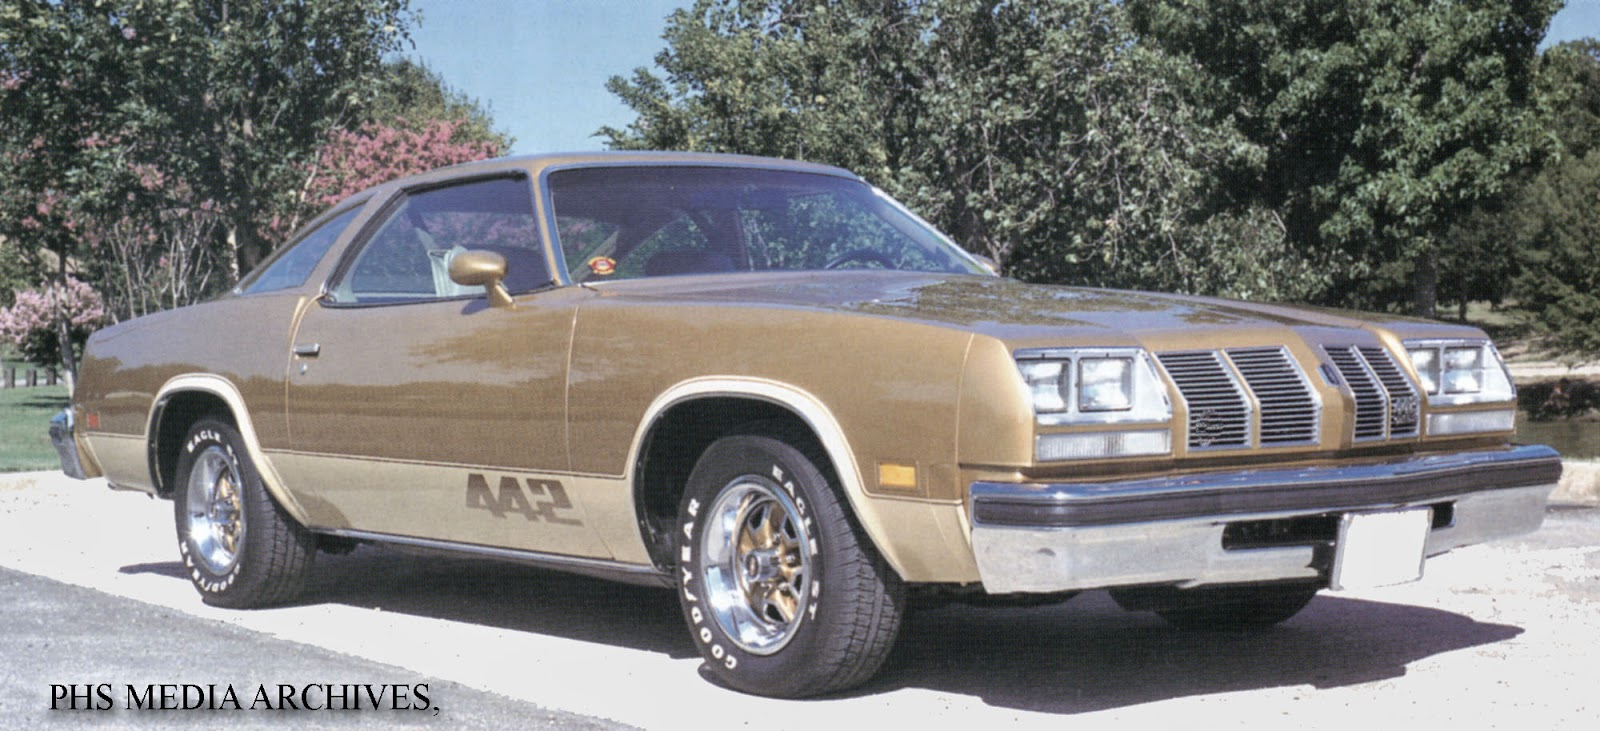 A fully dressed 1977 442; these were based on the Cutlass Salon body with a  special grille.